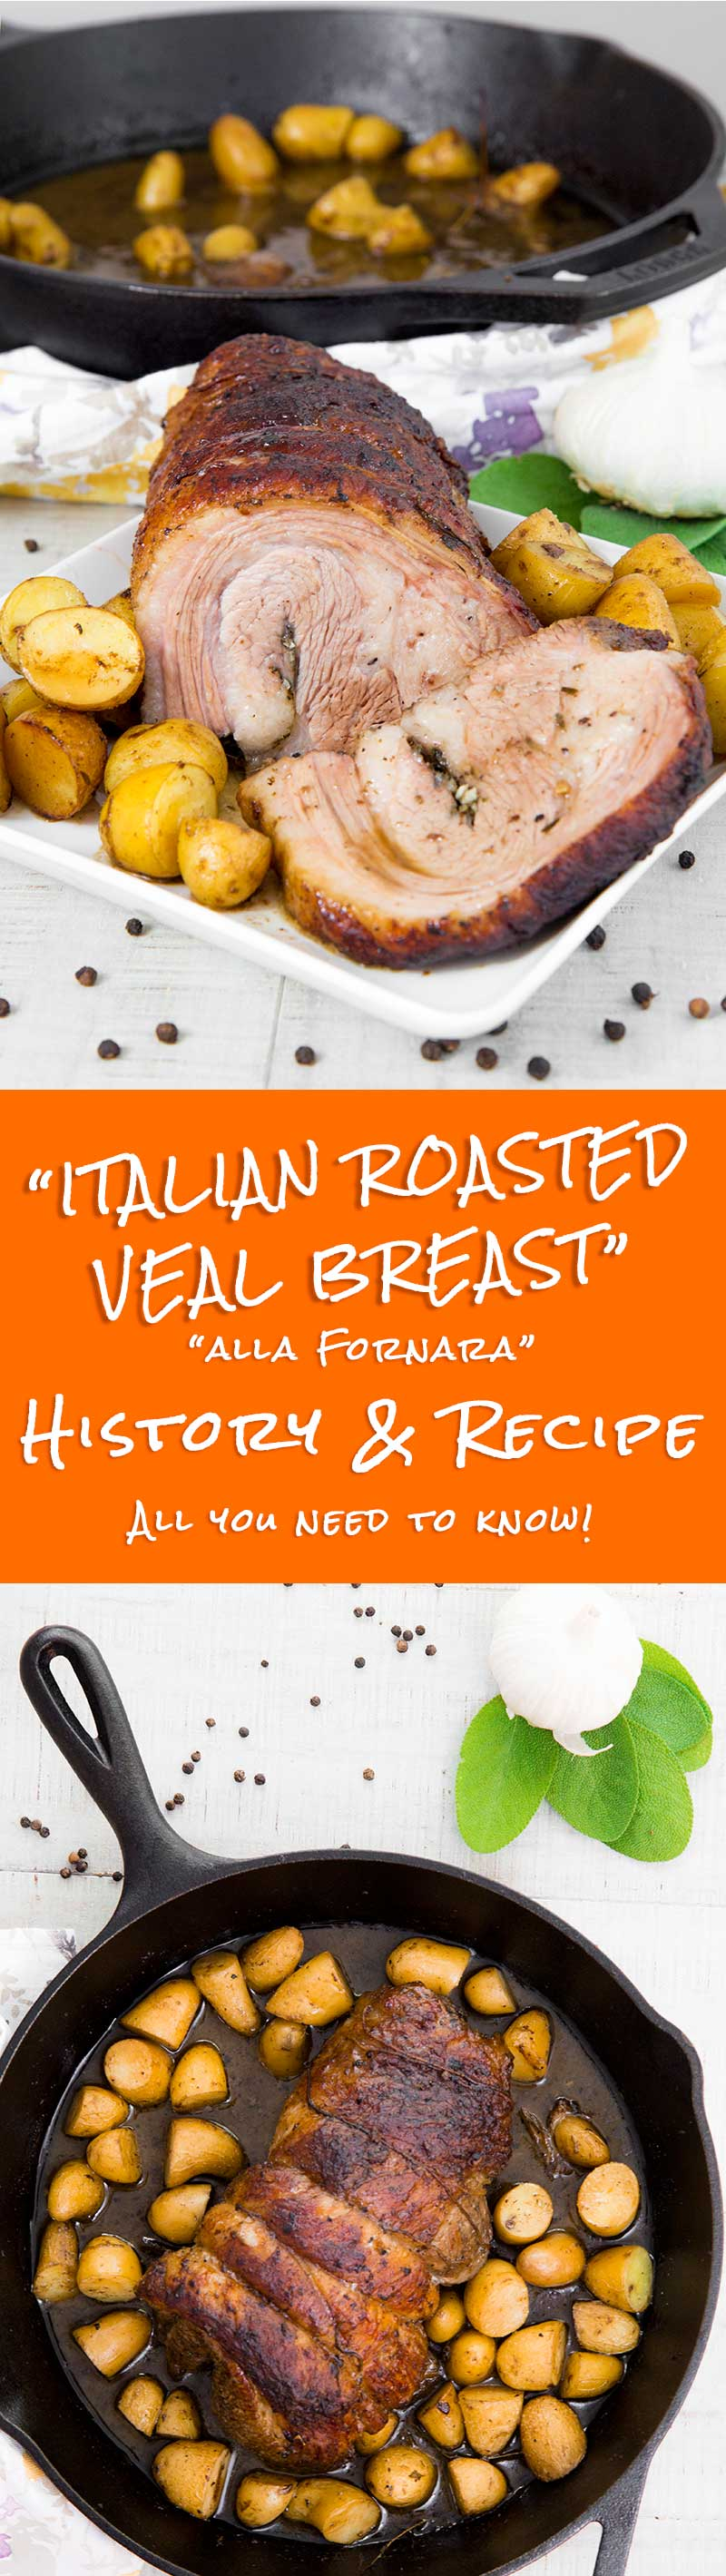 "ROASTED VEAL BREAST ""ALLA FORNARA"" Recipe & History"